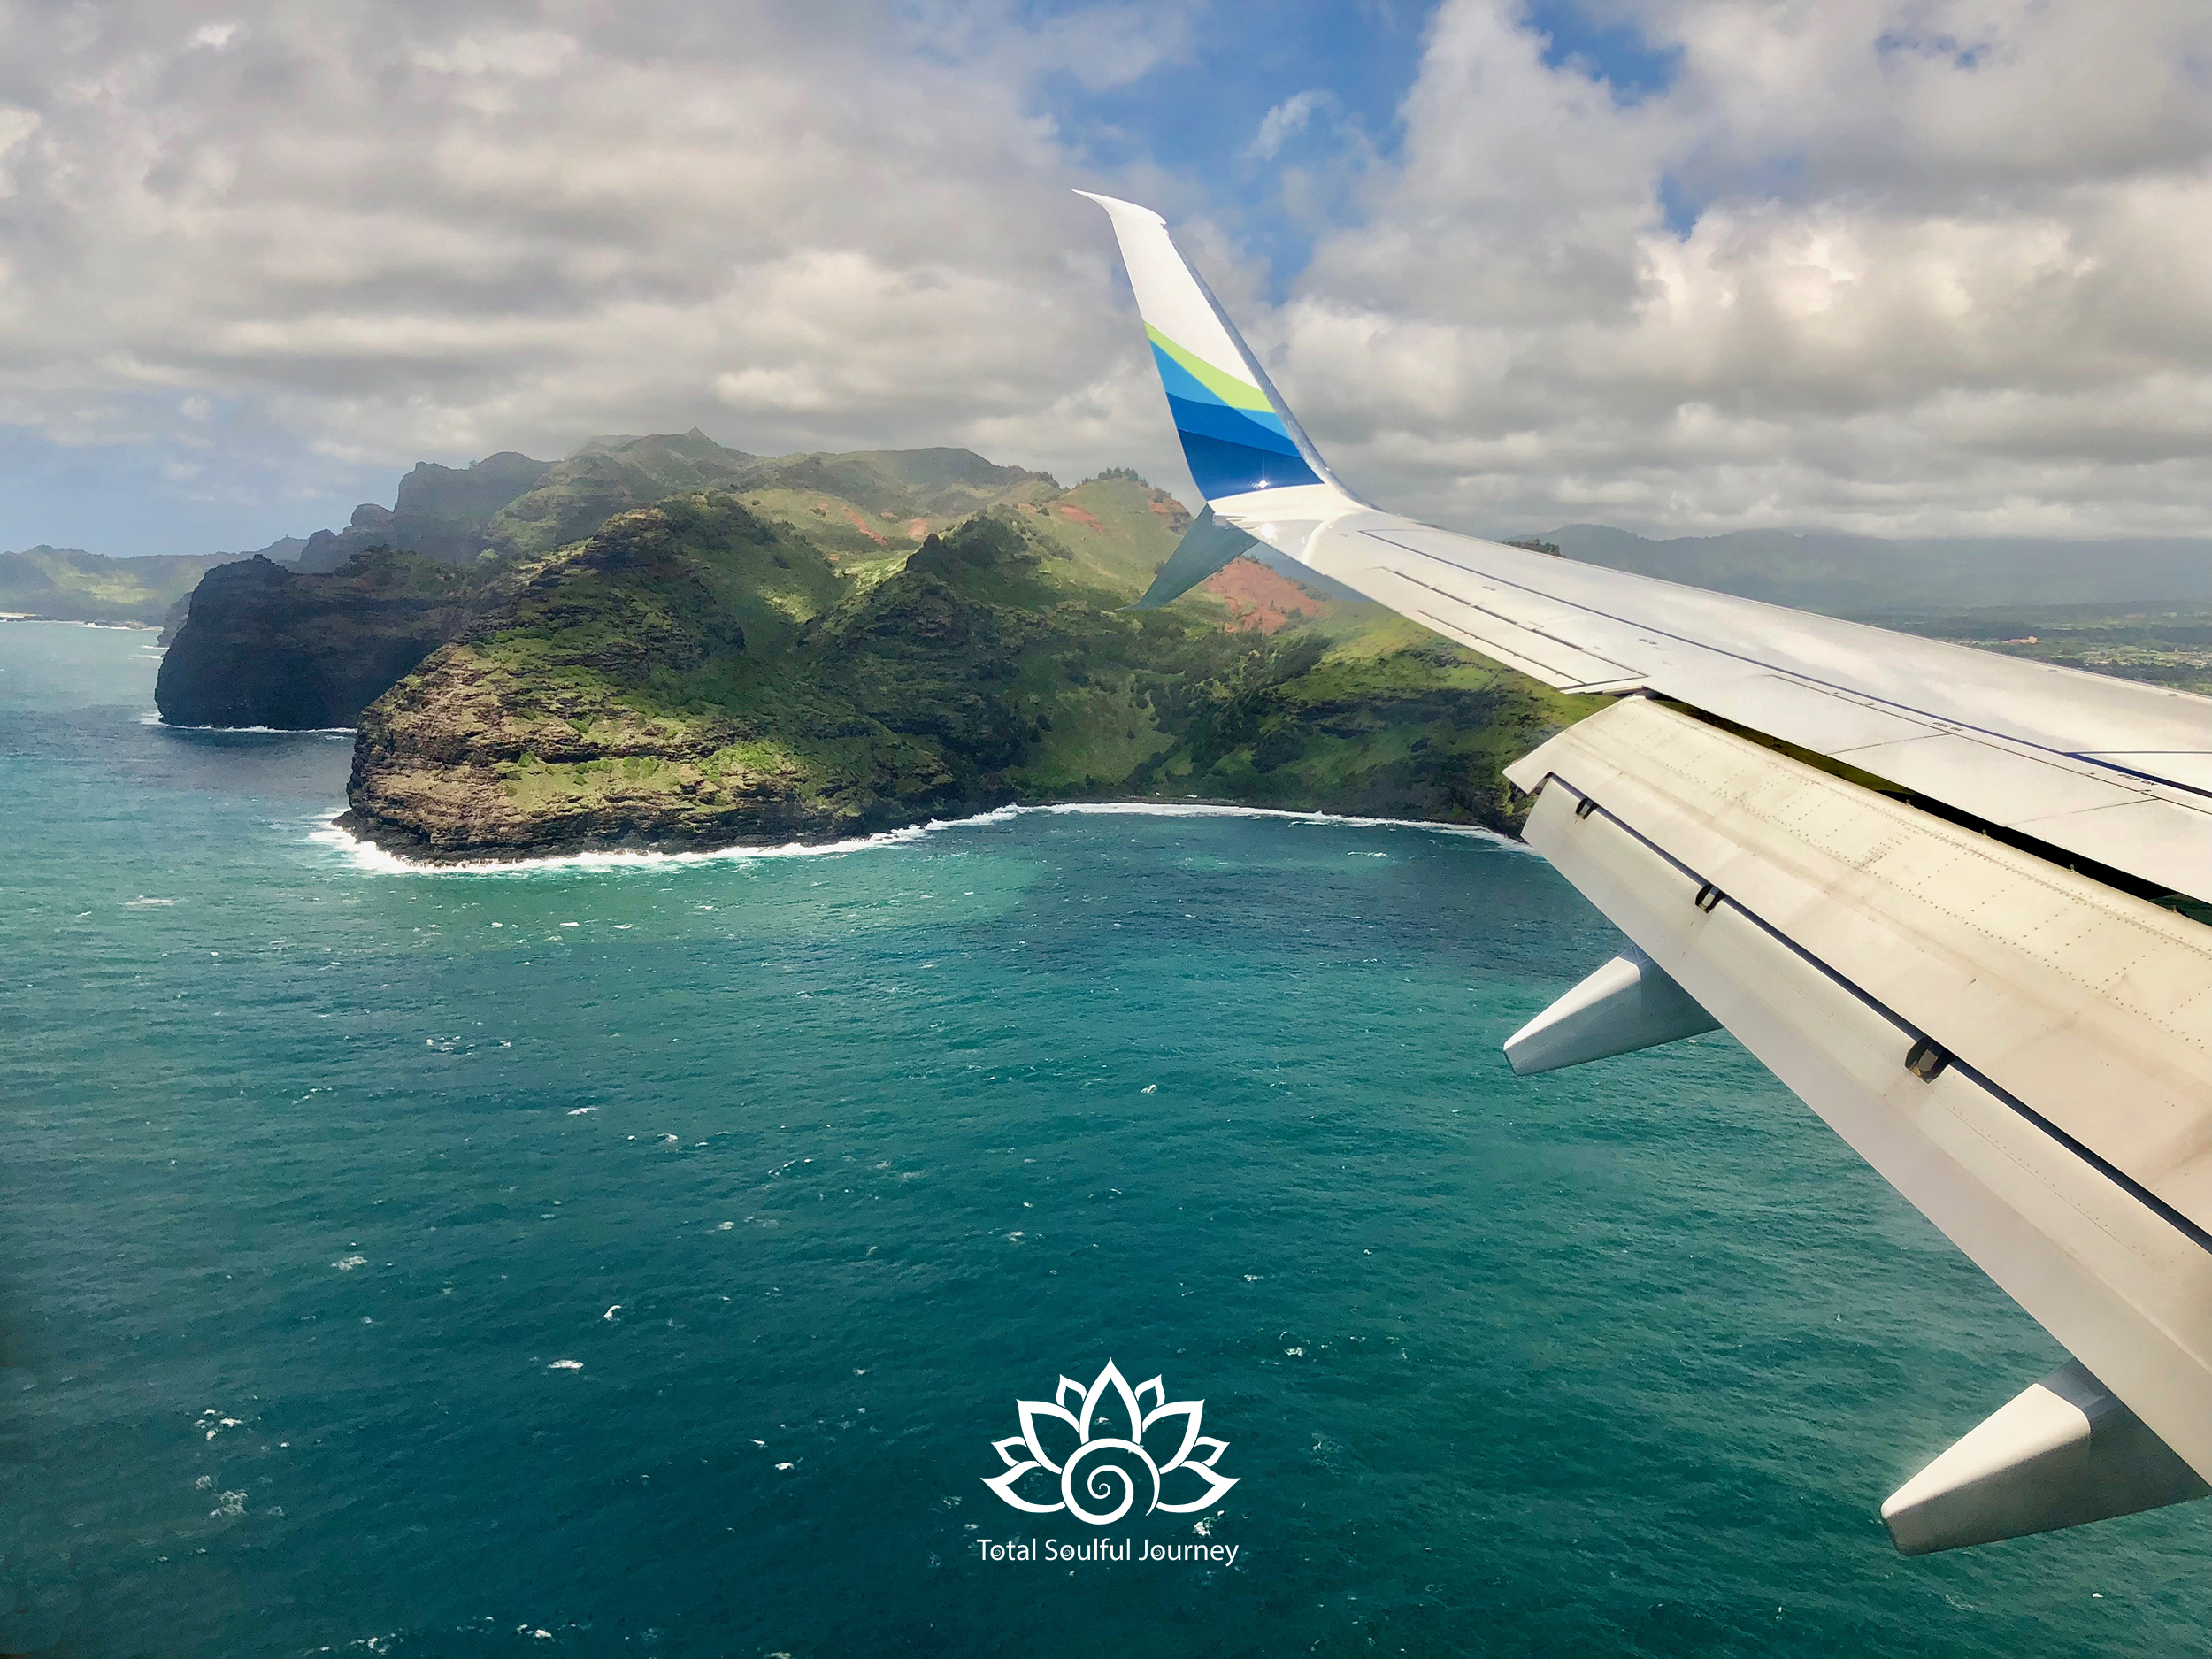 On approach to the main airport for the island of Kauai in the city of Lihue. Photography by Paul Garrett